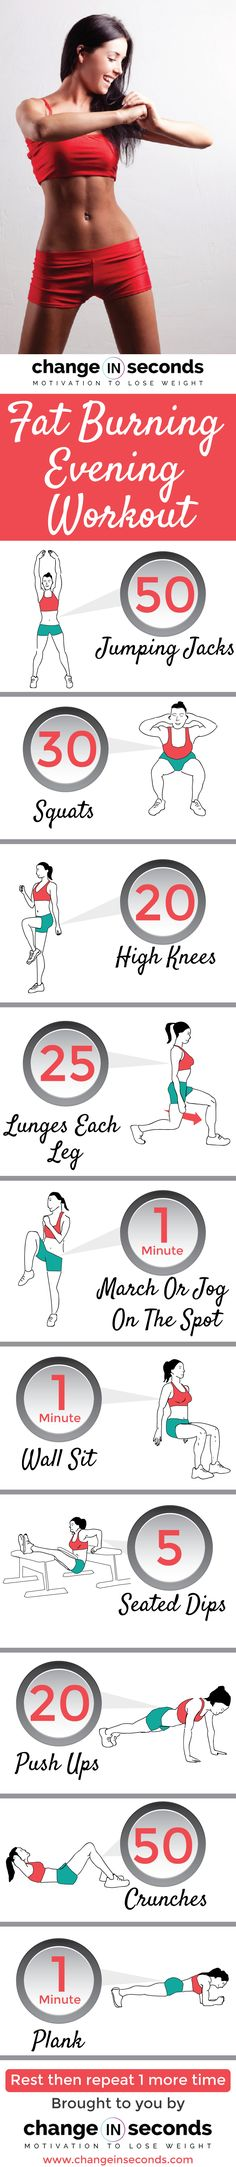 Fat Burning Evening Workout…